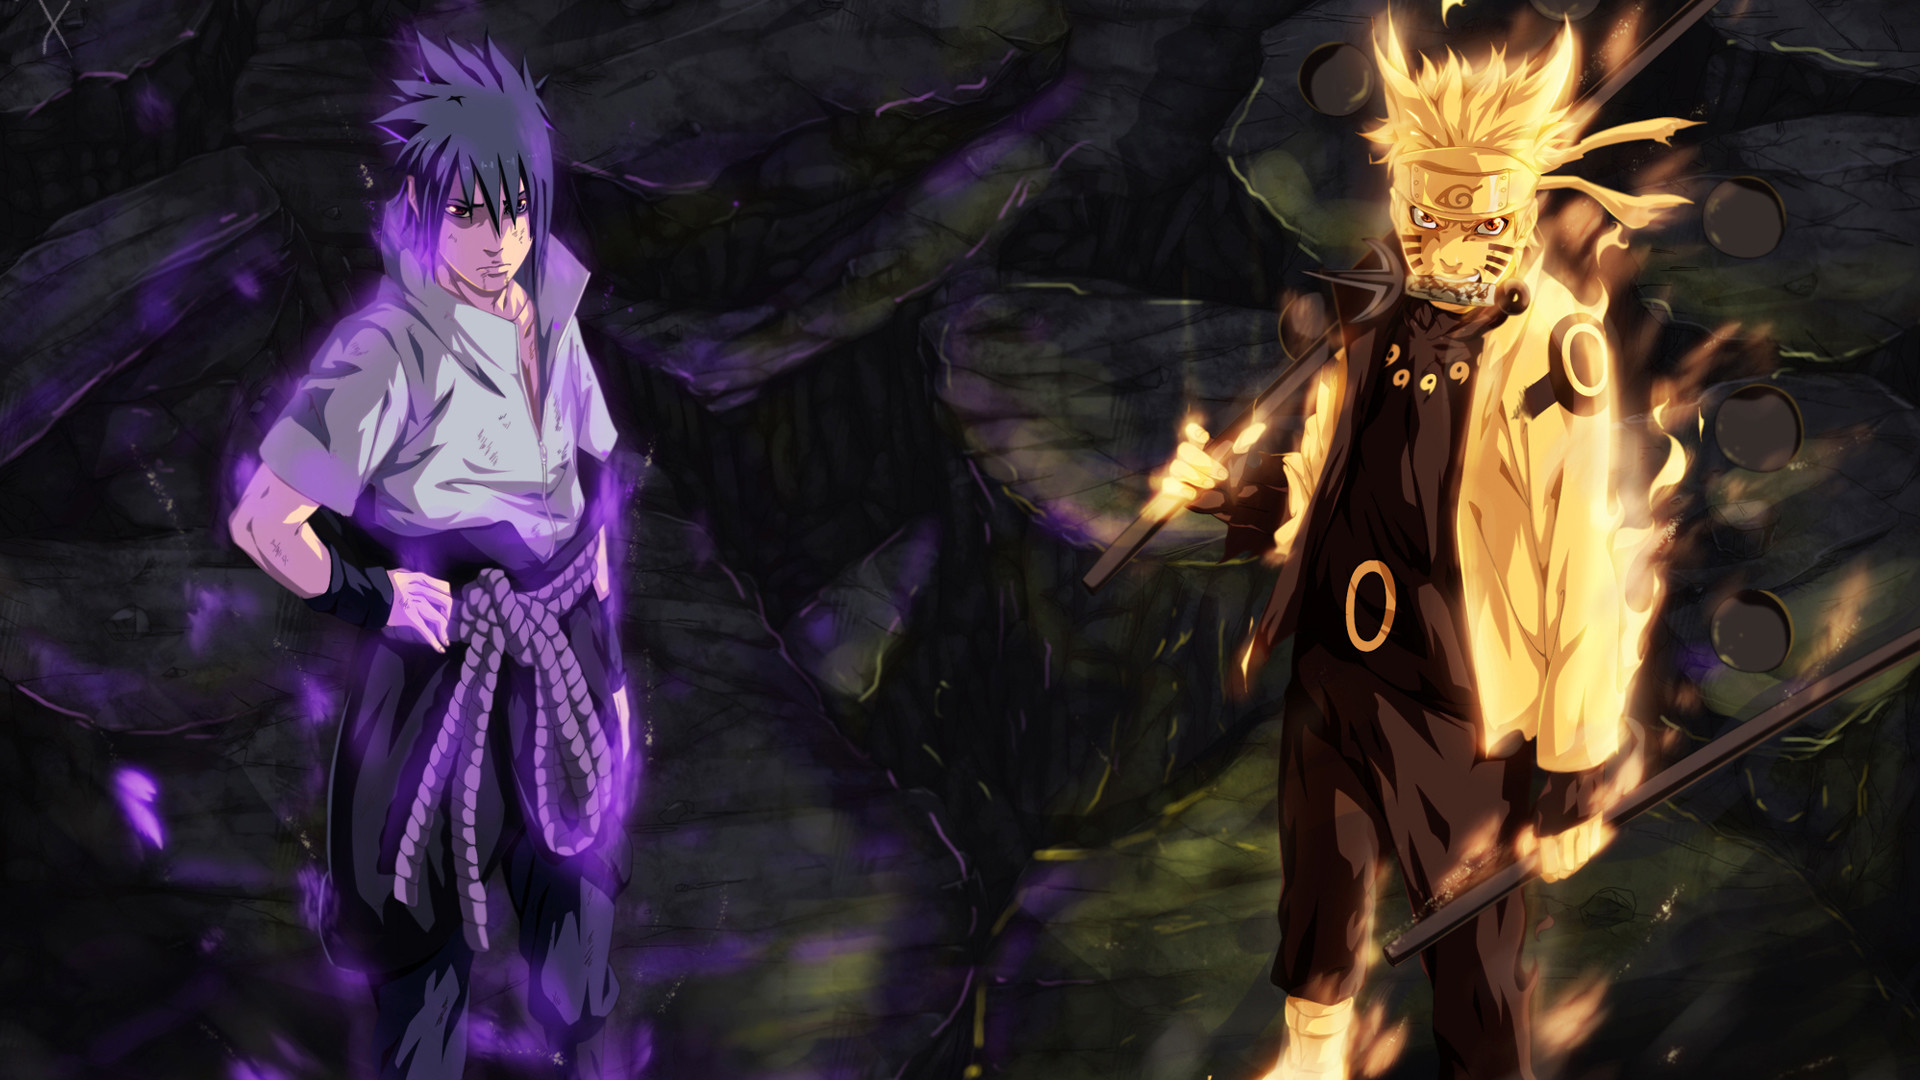 Res: 1920x1080, Group Of Naruto Sage Of Six Paths Wallpaper